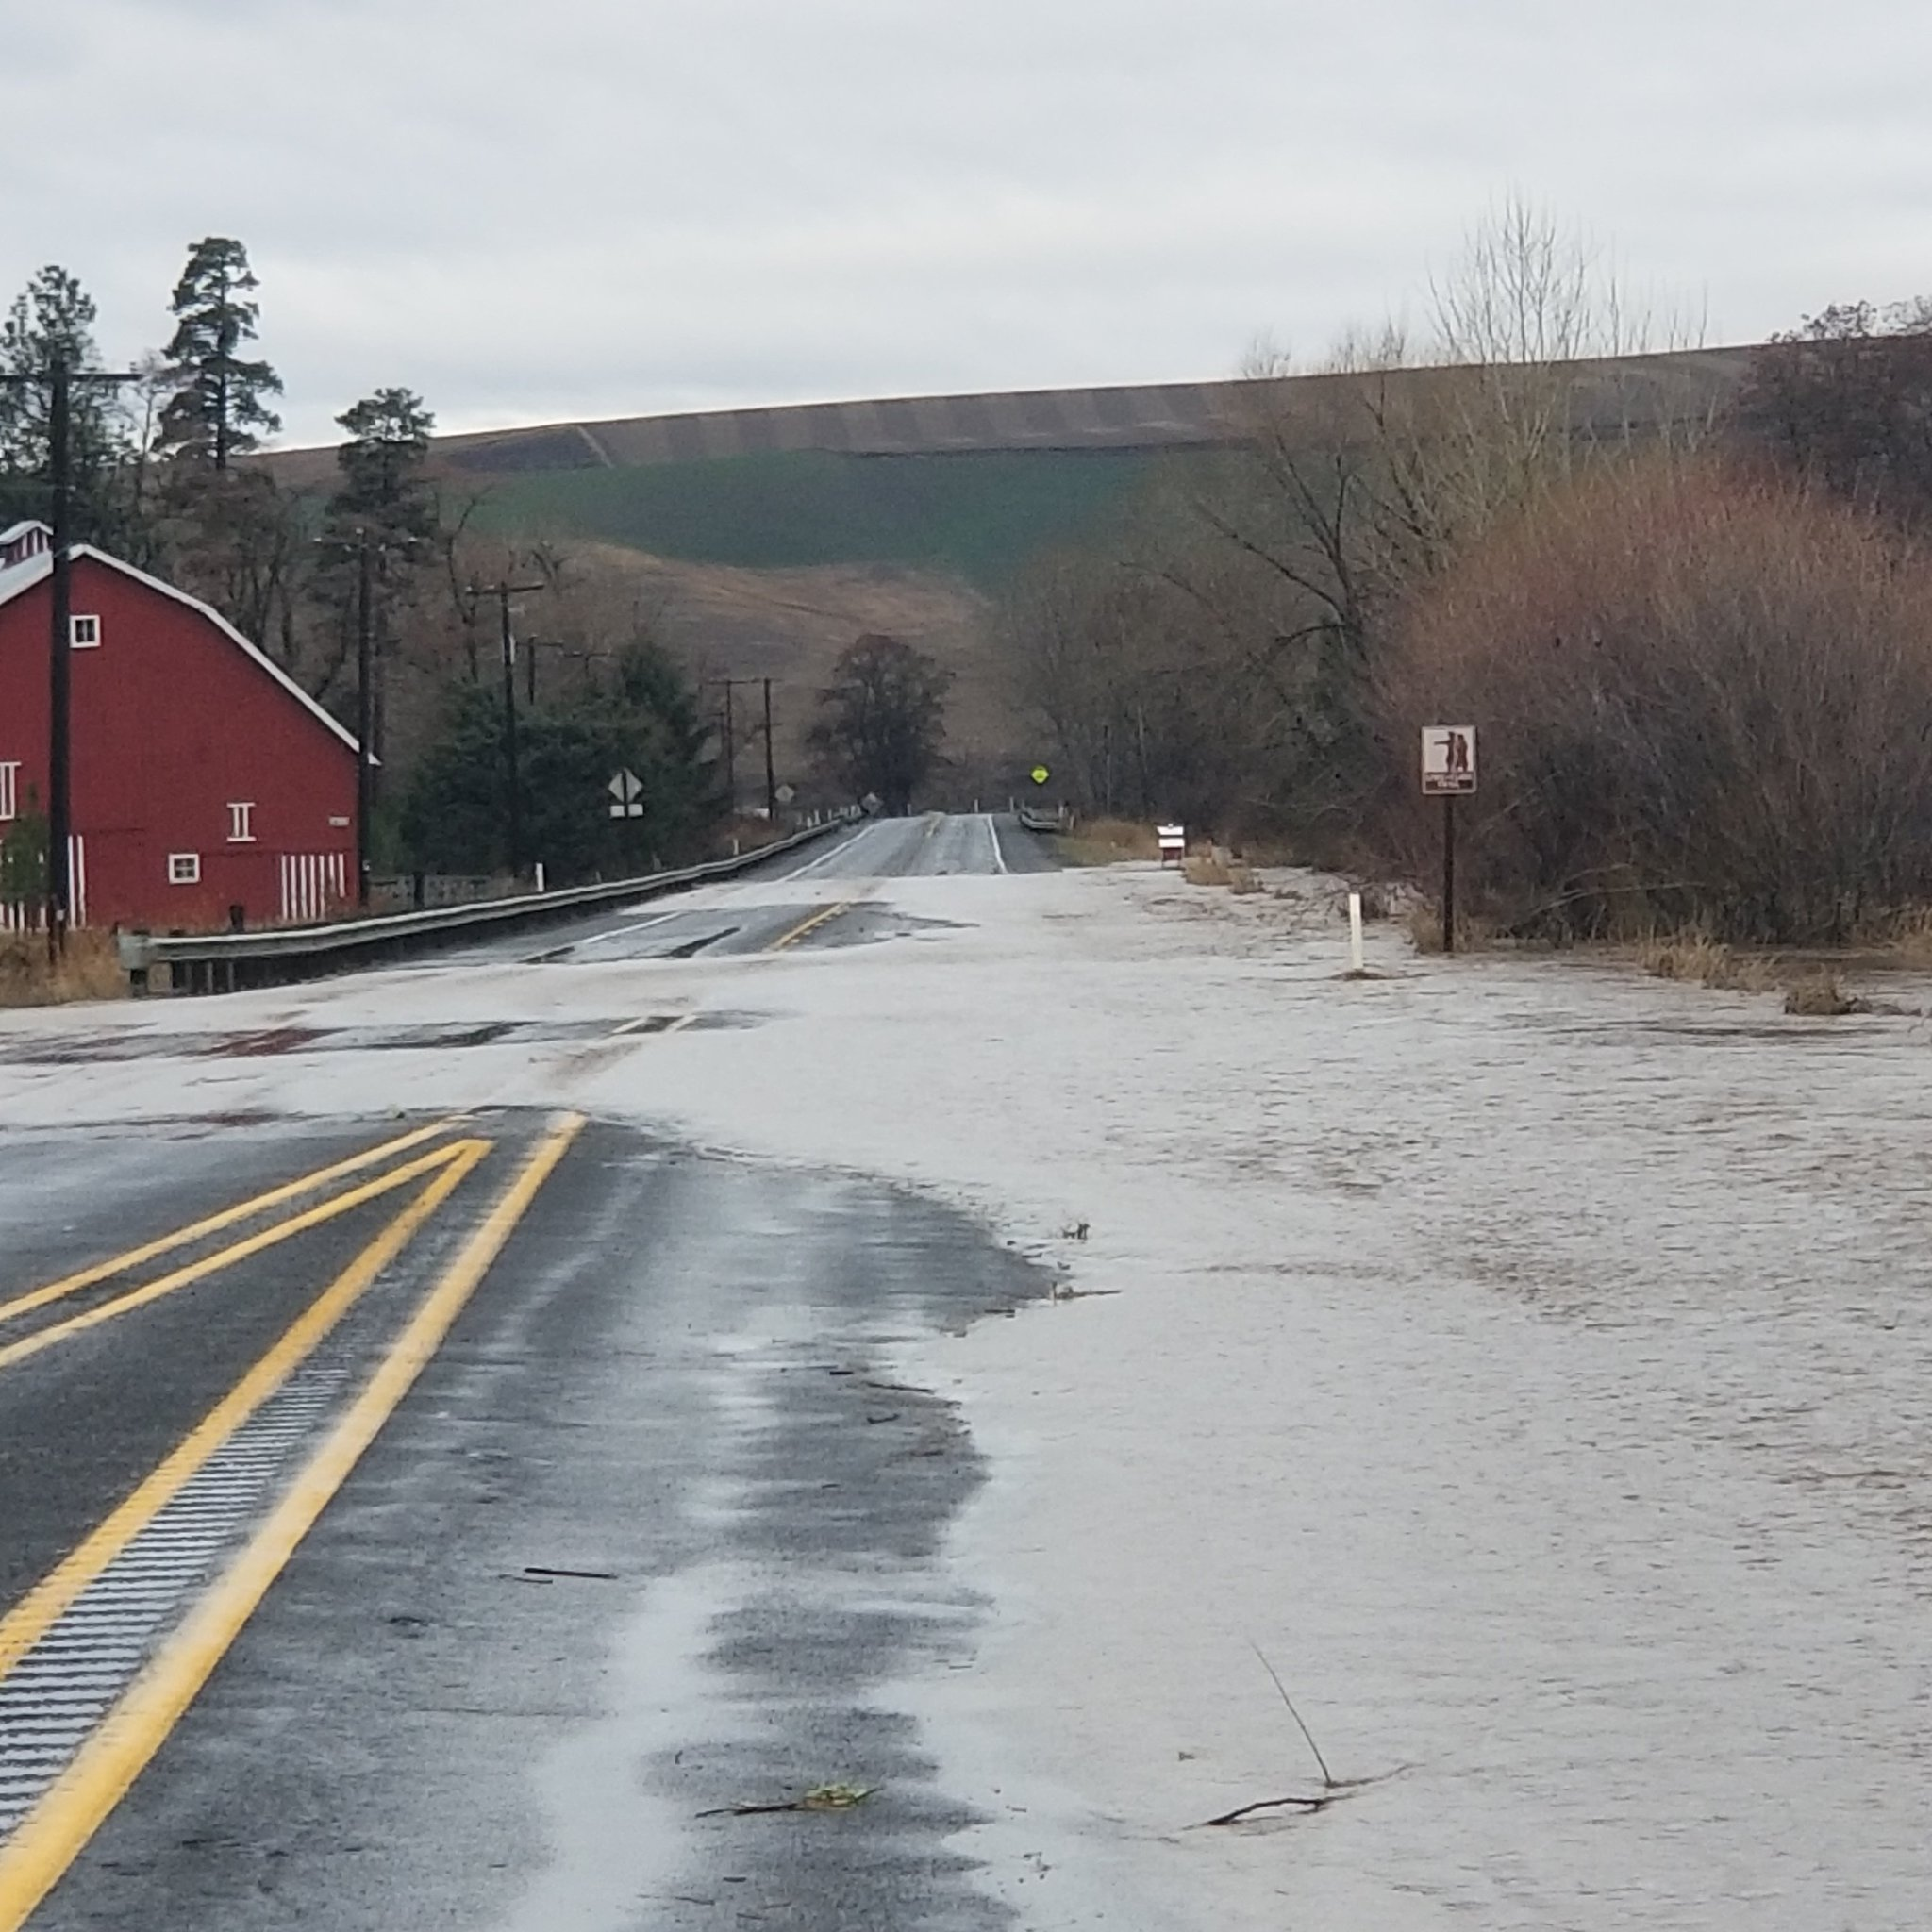 UPDATE: US 12 between Waitsburg and Dayton will remain closed overnight to let water levels drop. We will provide an update Saturday morning regarding current conditions and a reopening time. https://t.co/J3R7Mrtn2l